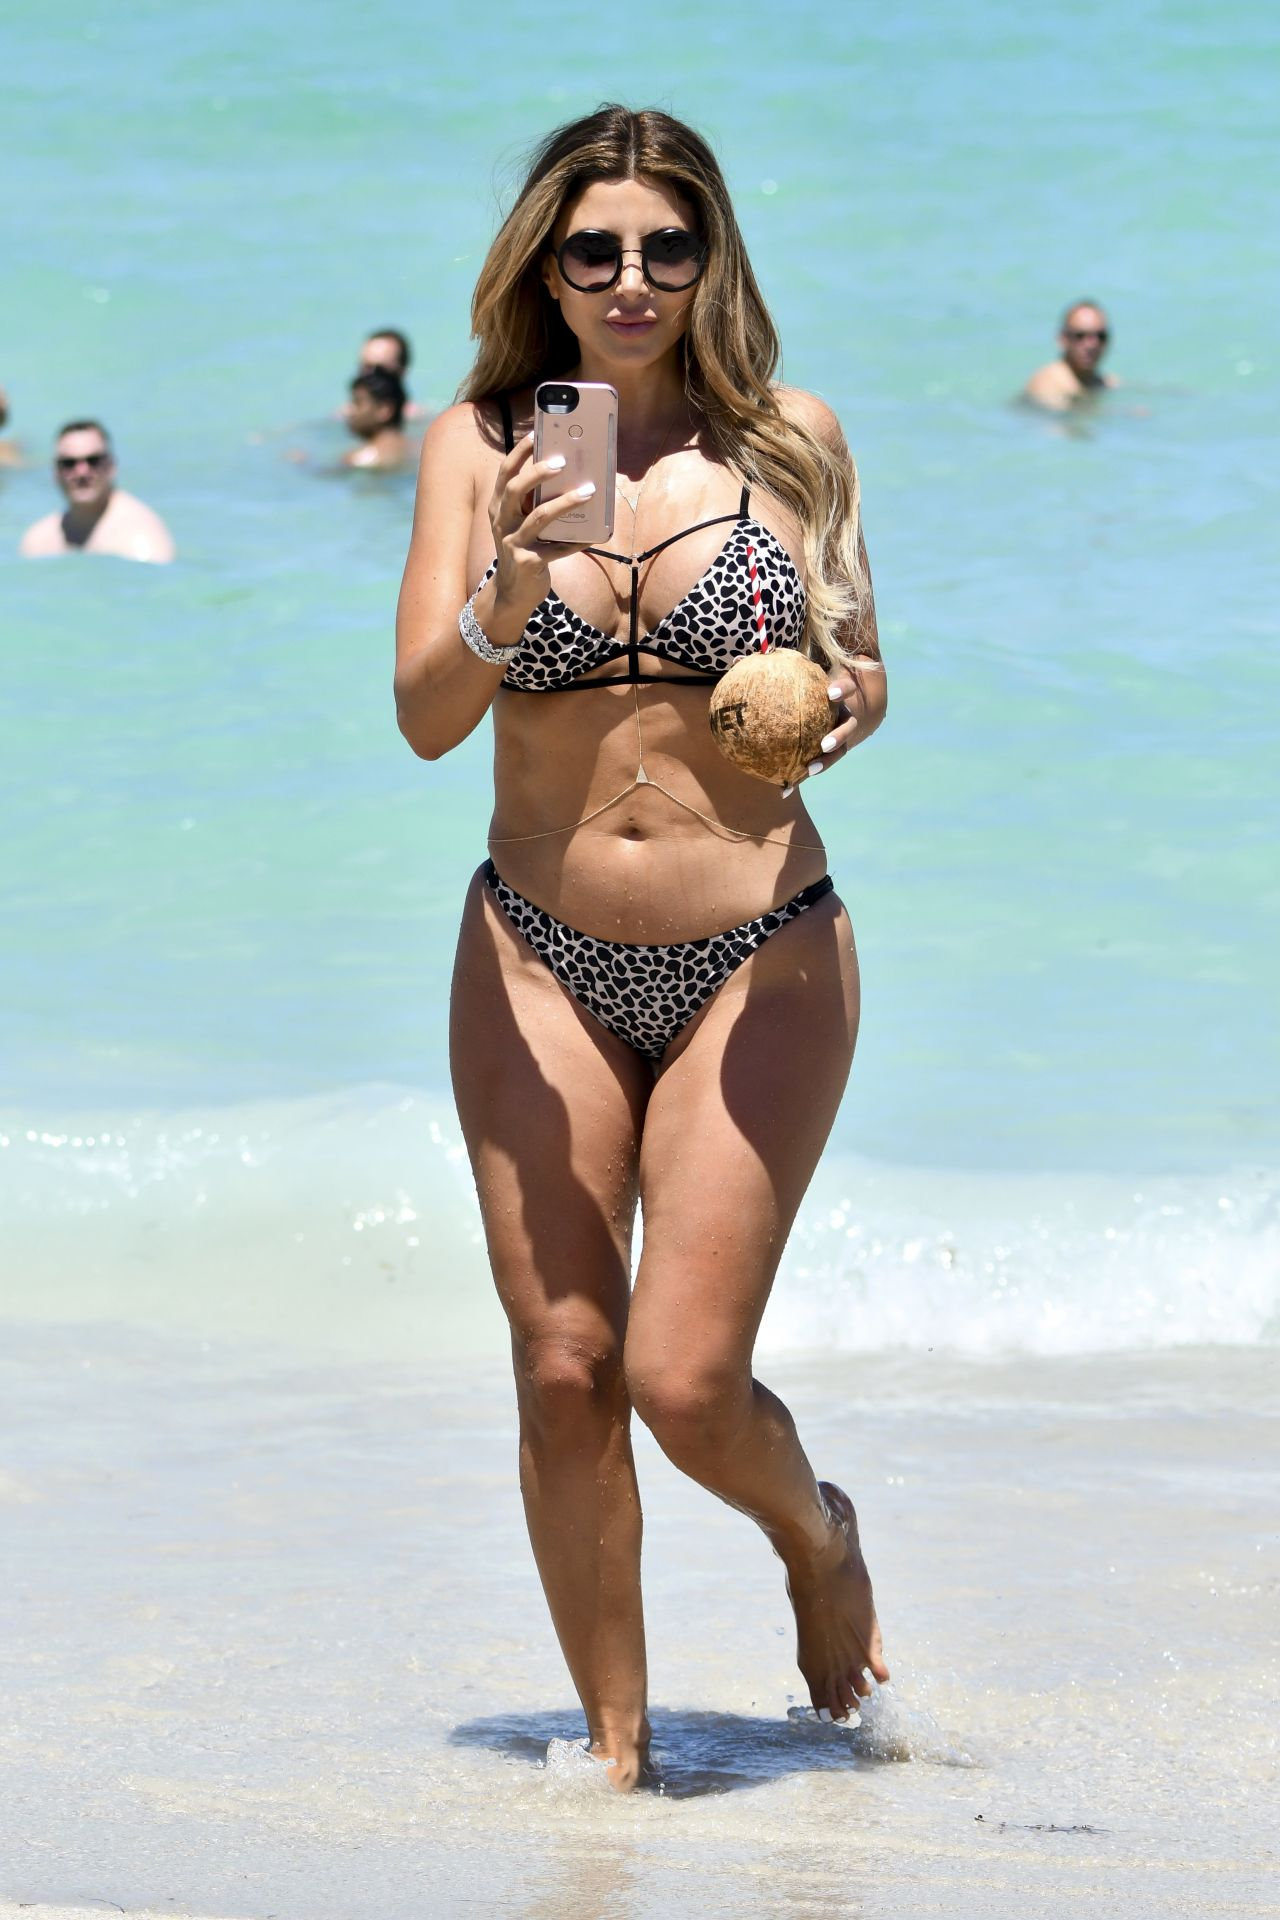 Erotica Larsa Pippen nudes (67 foto and video), Topless, Fappening, Instagram, legs 2017